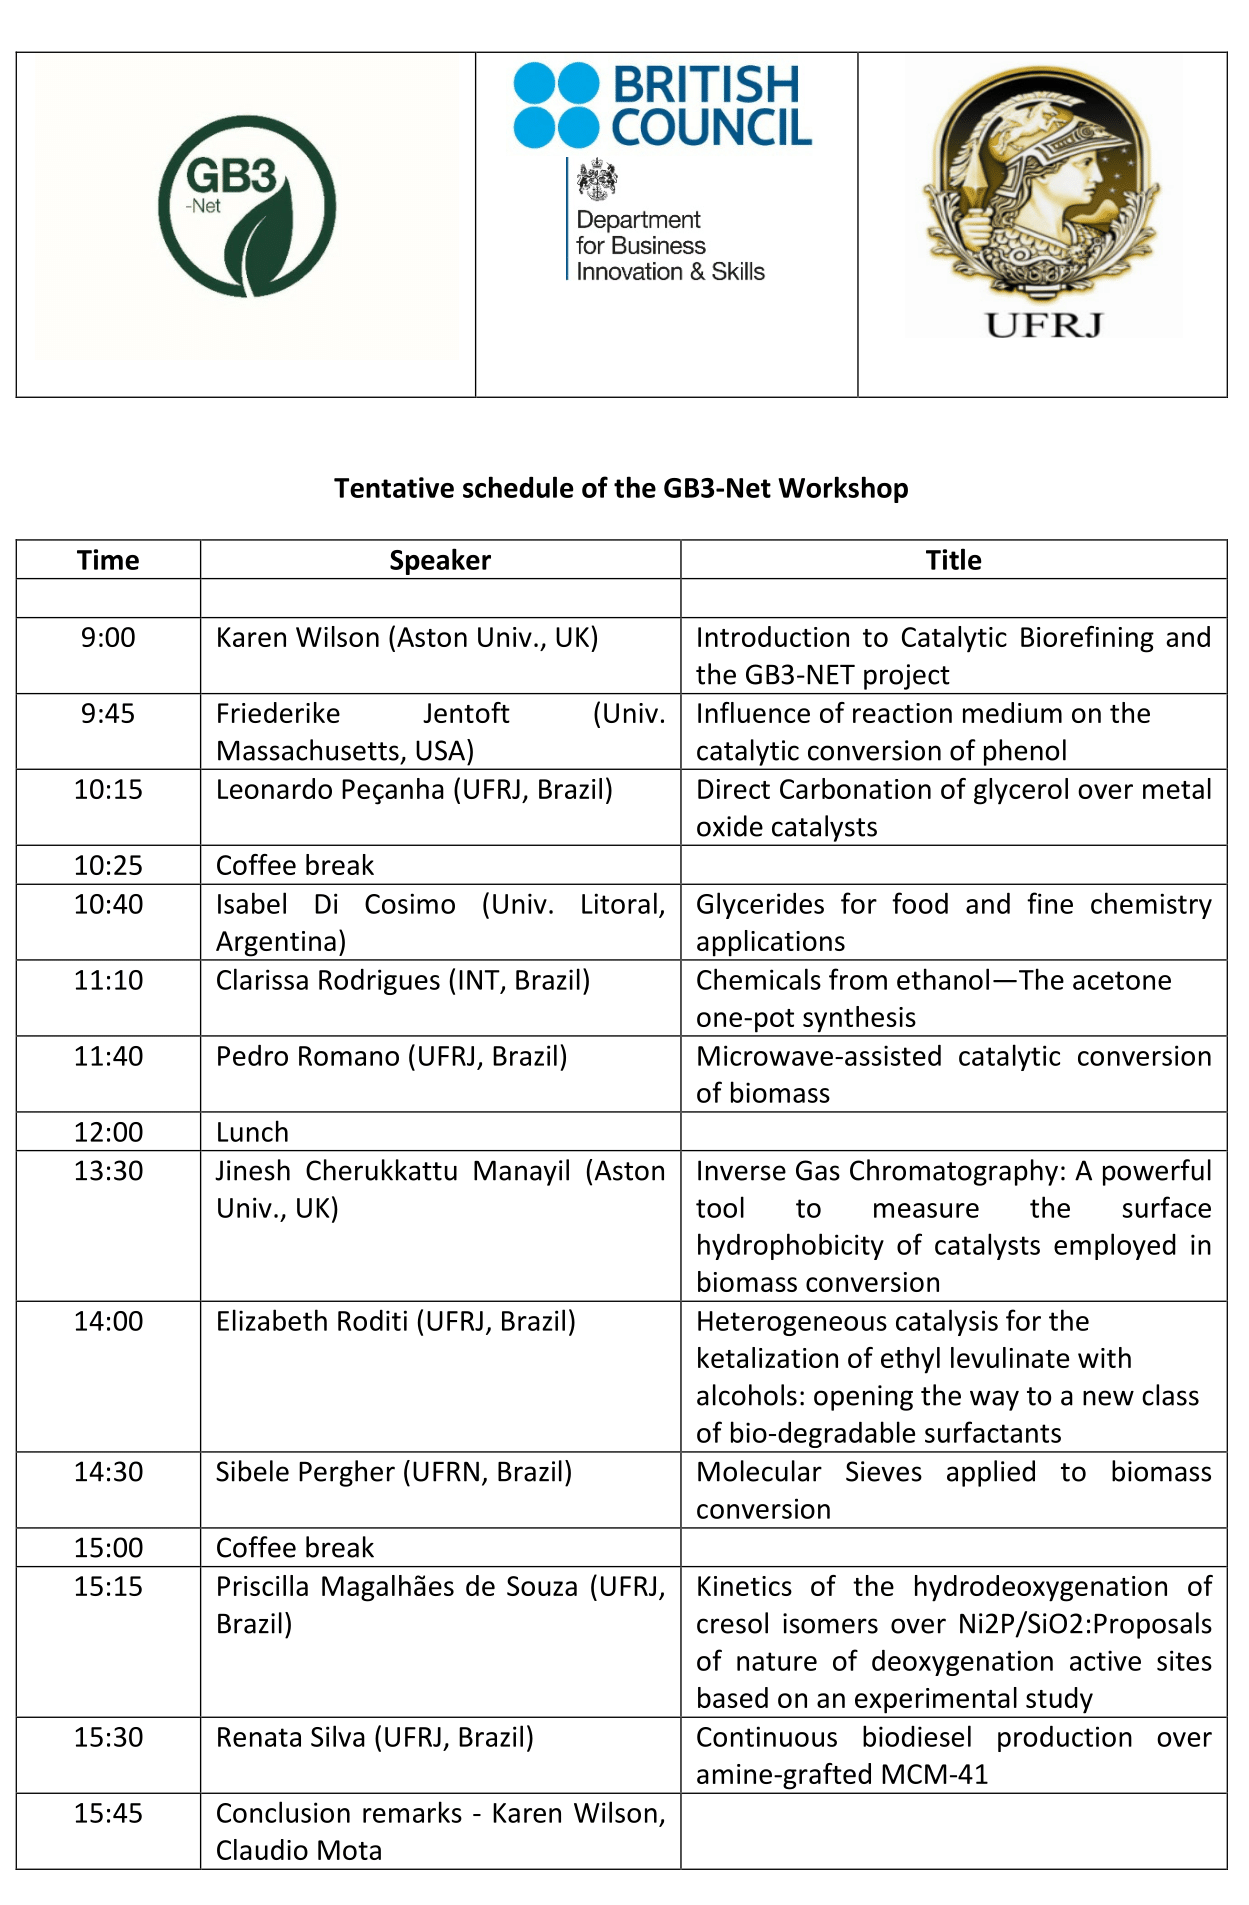 schedule-of-the-gb3-net-workshop-1-1